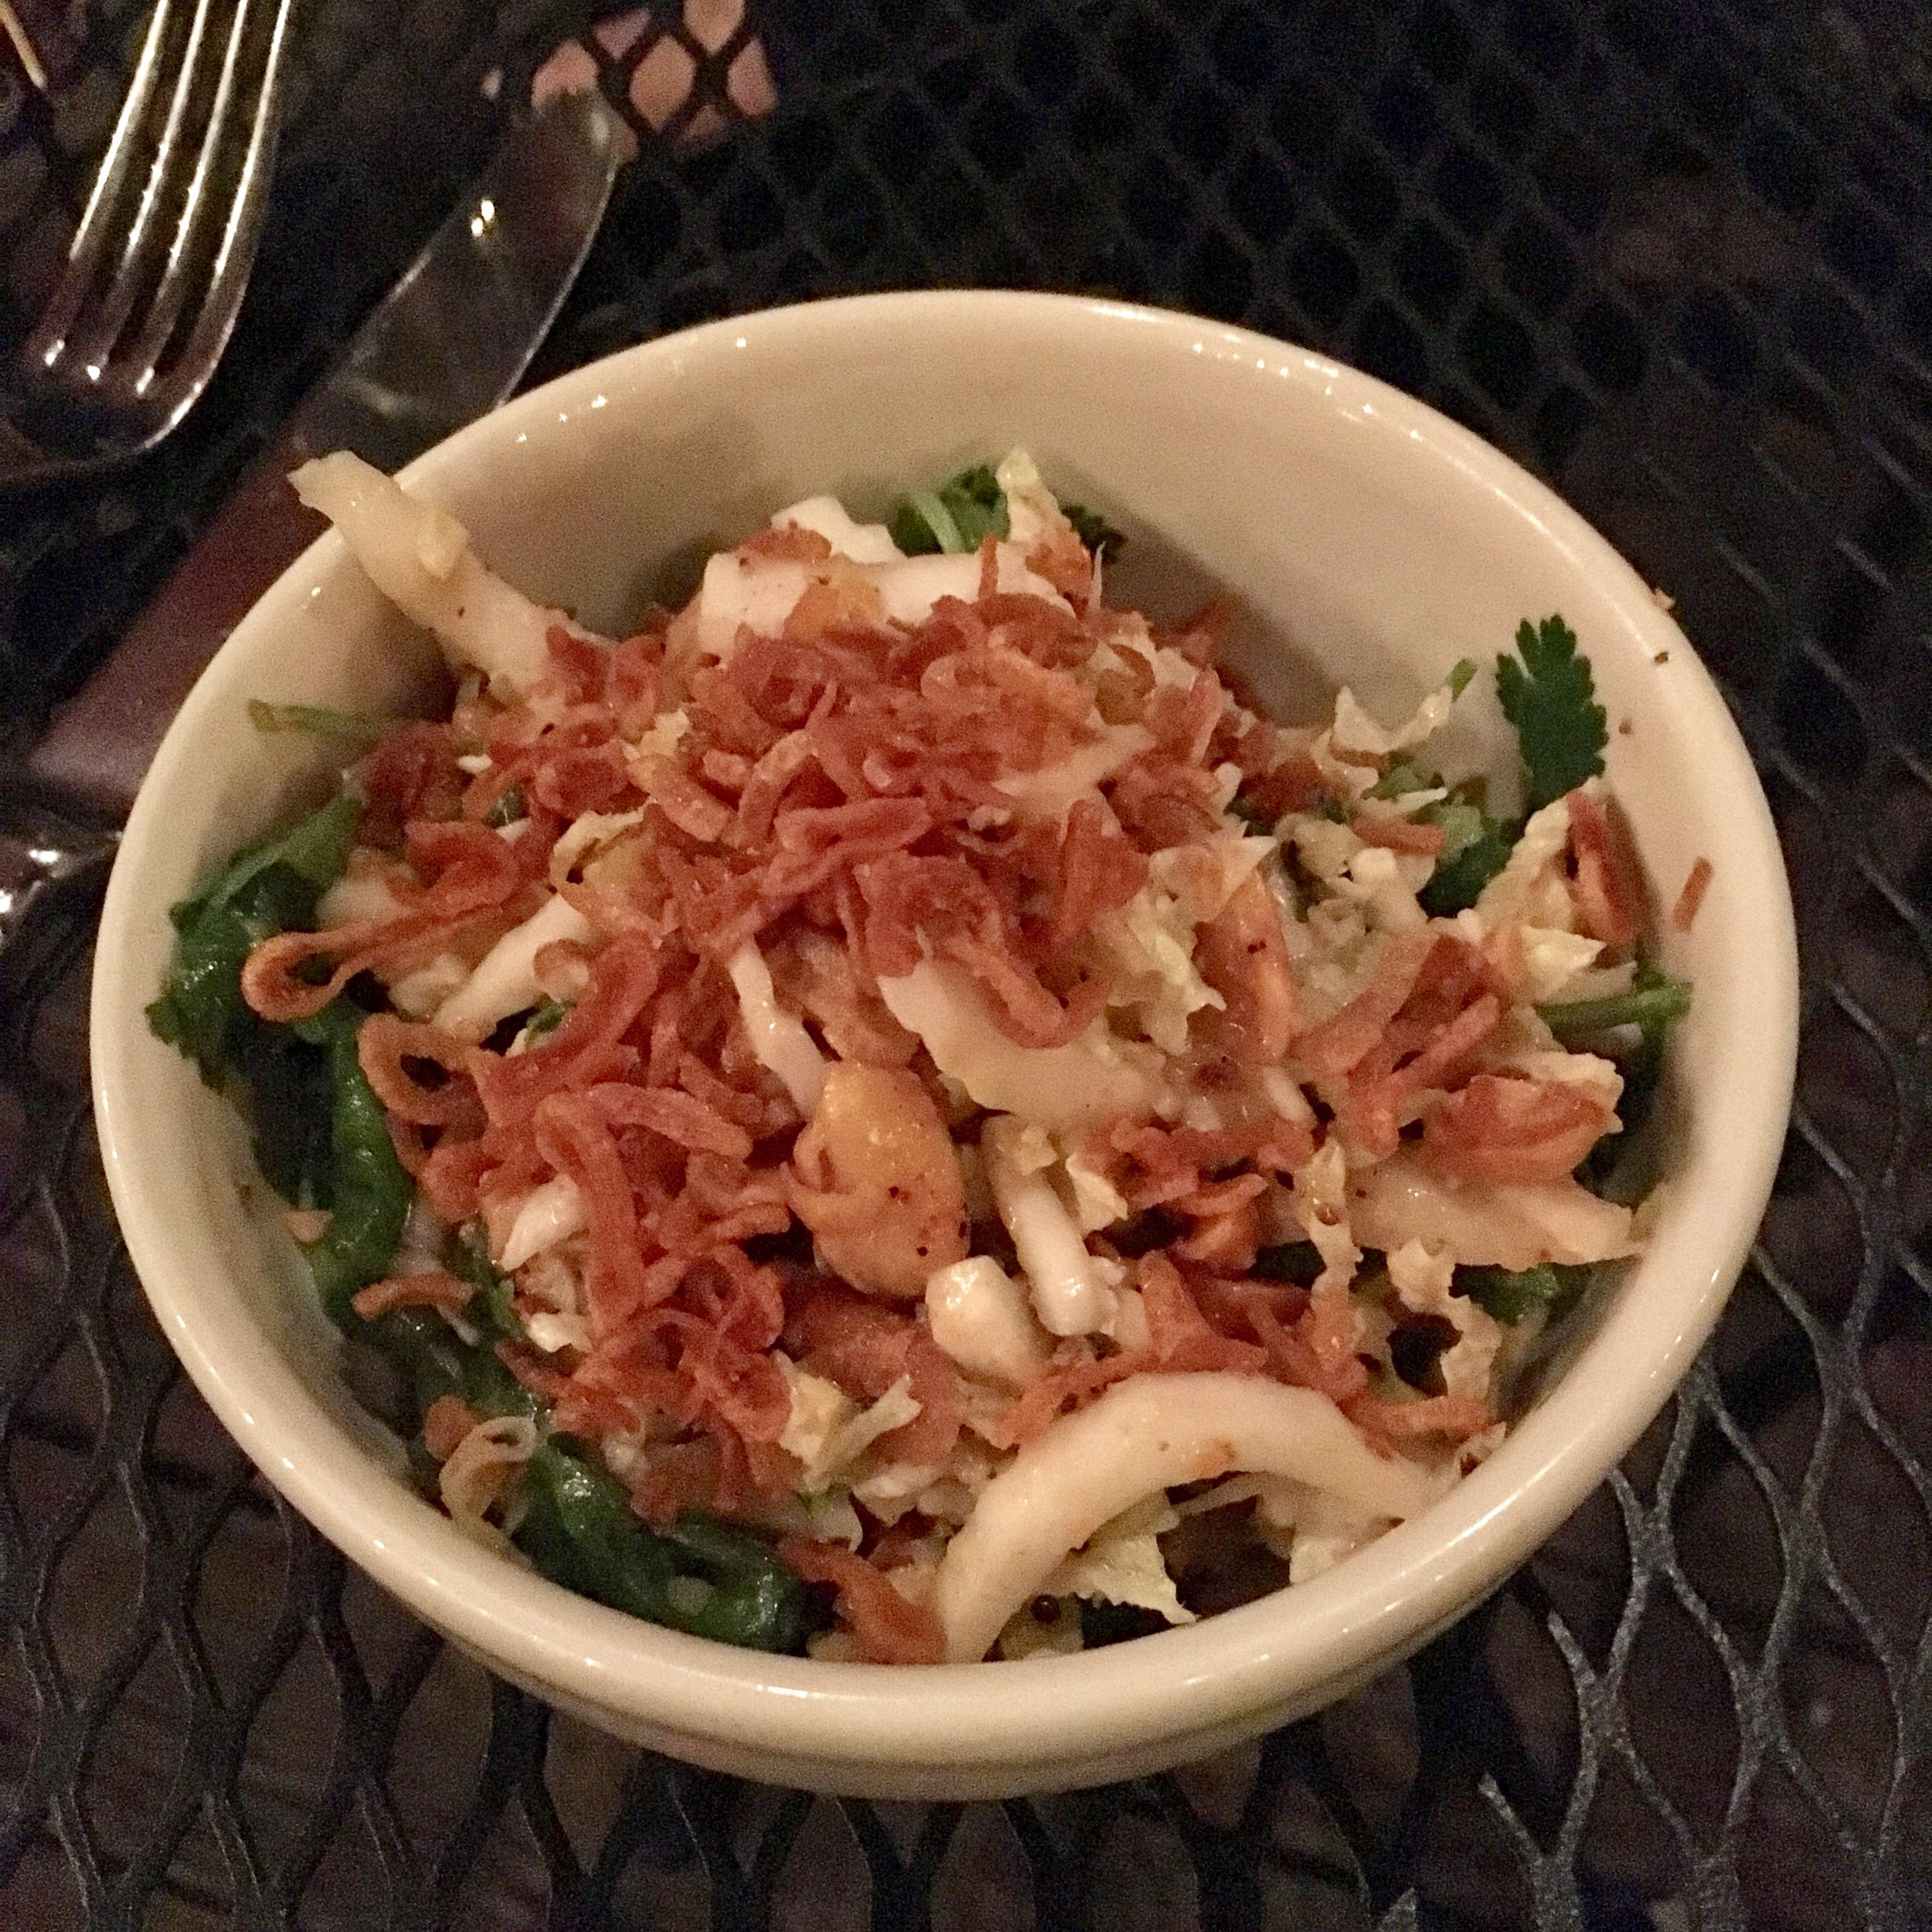 The Cabbage Salad $10